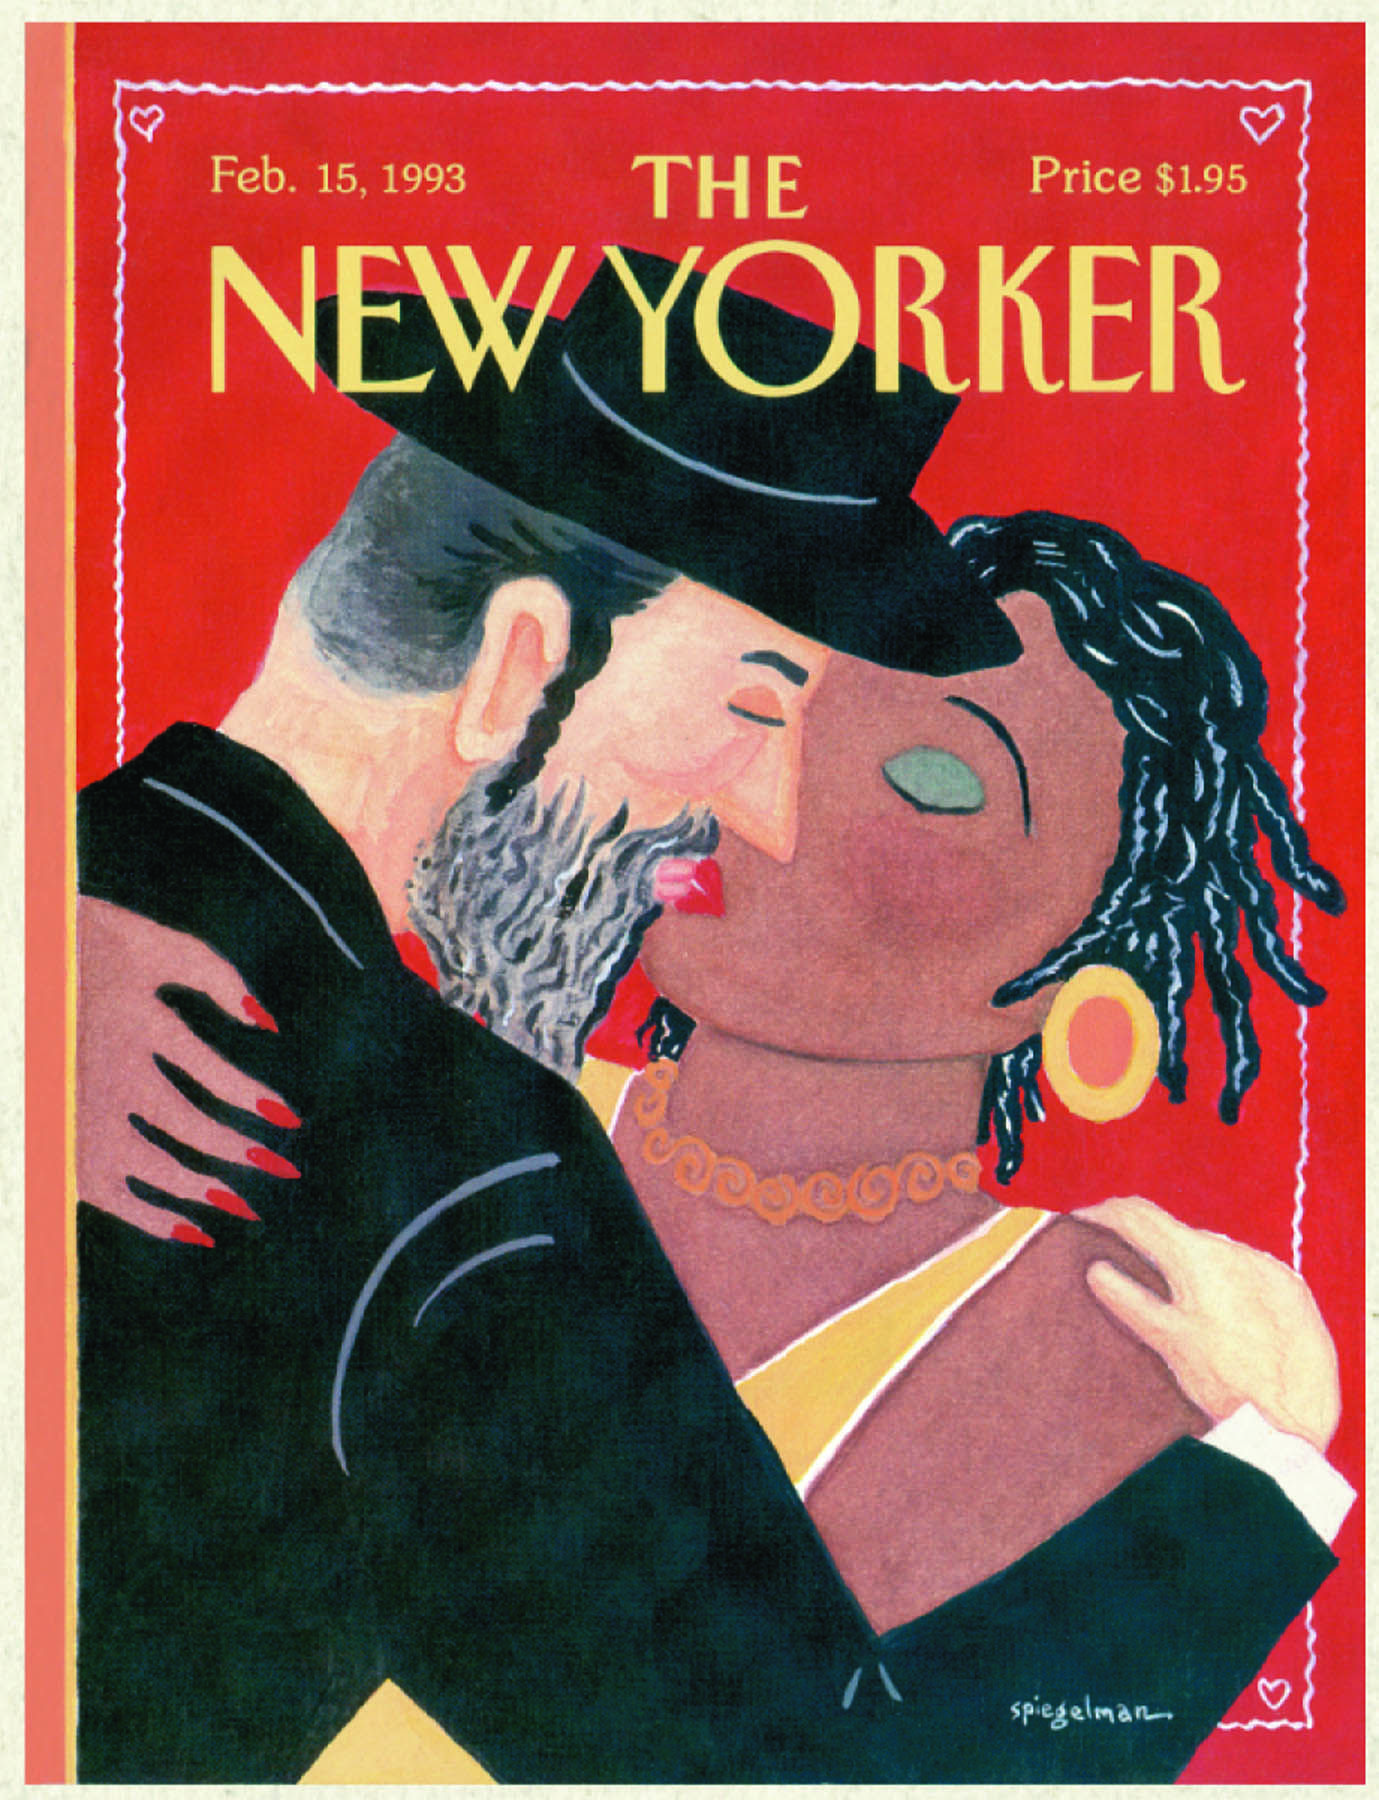 The Greatness of Art Spiegelman's 'New Yorker' Cover Art – Flavorwire